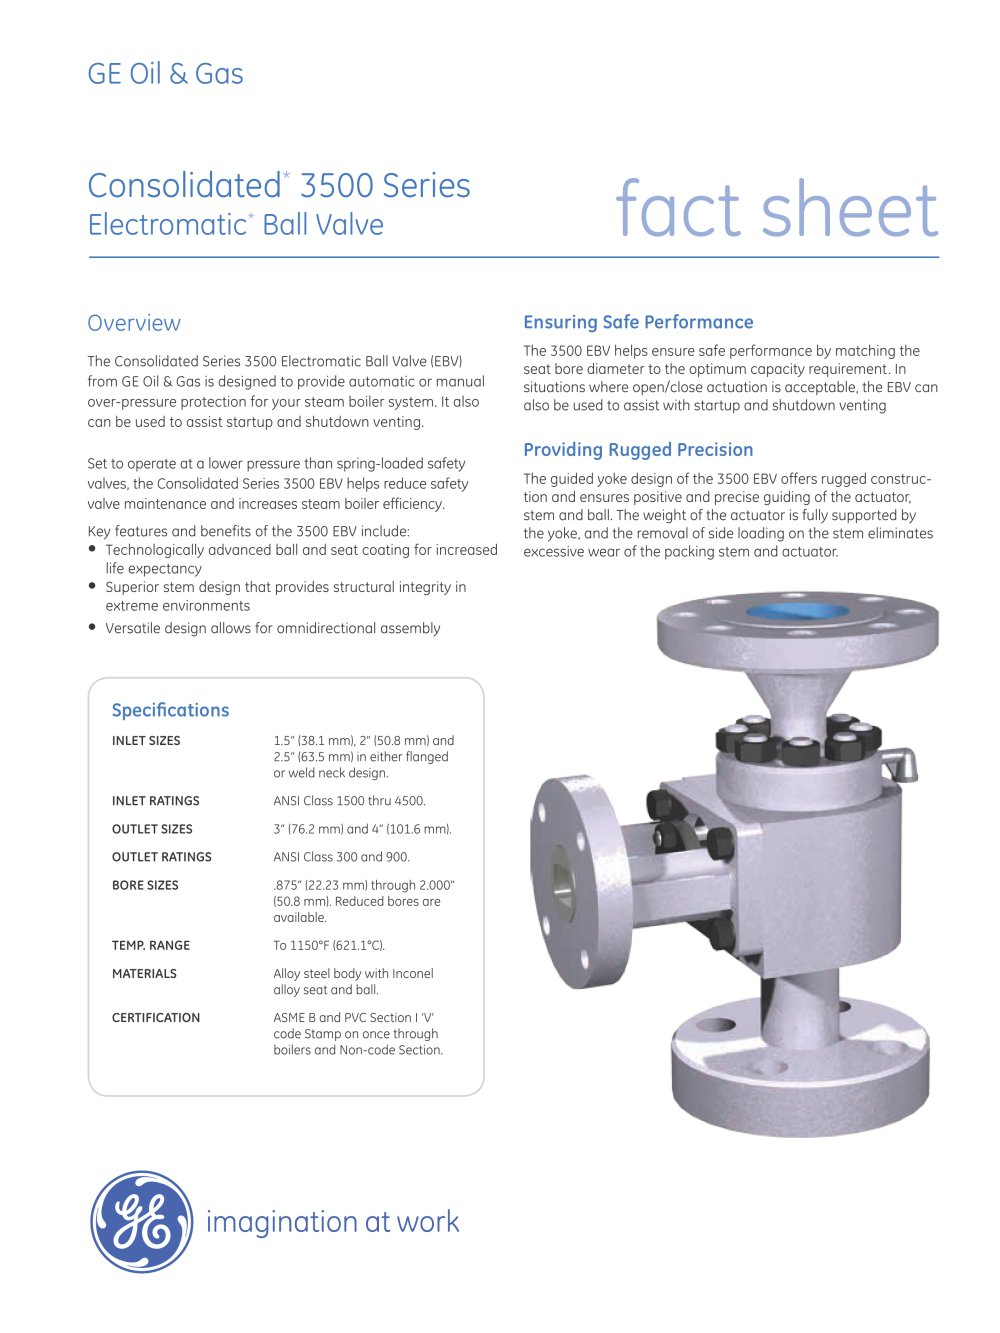 Consolidated Type 3500 Electromatic Ball Valve 1 4 Pages